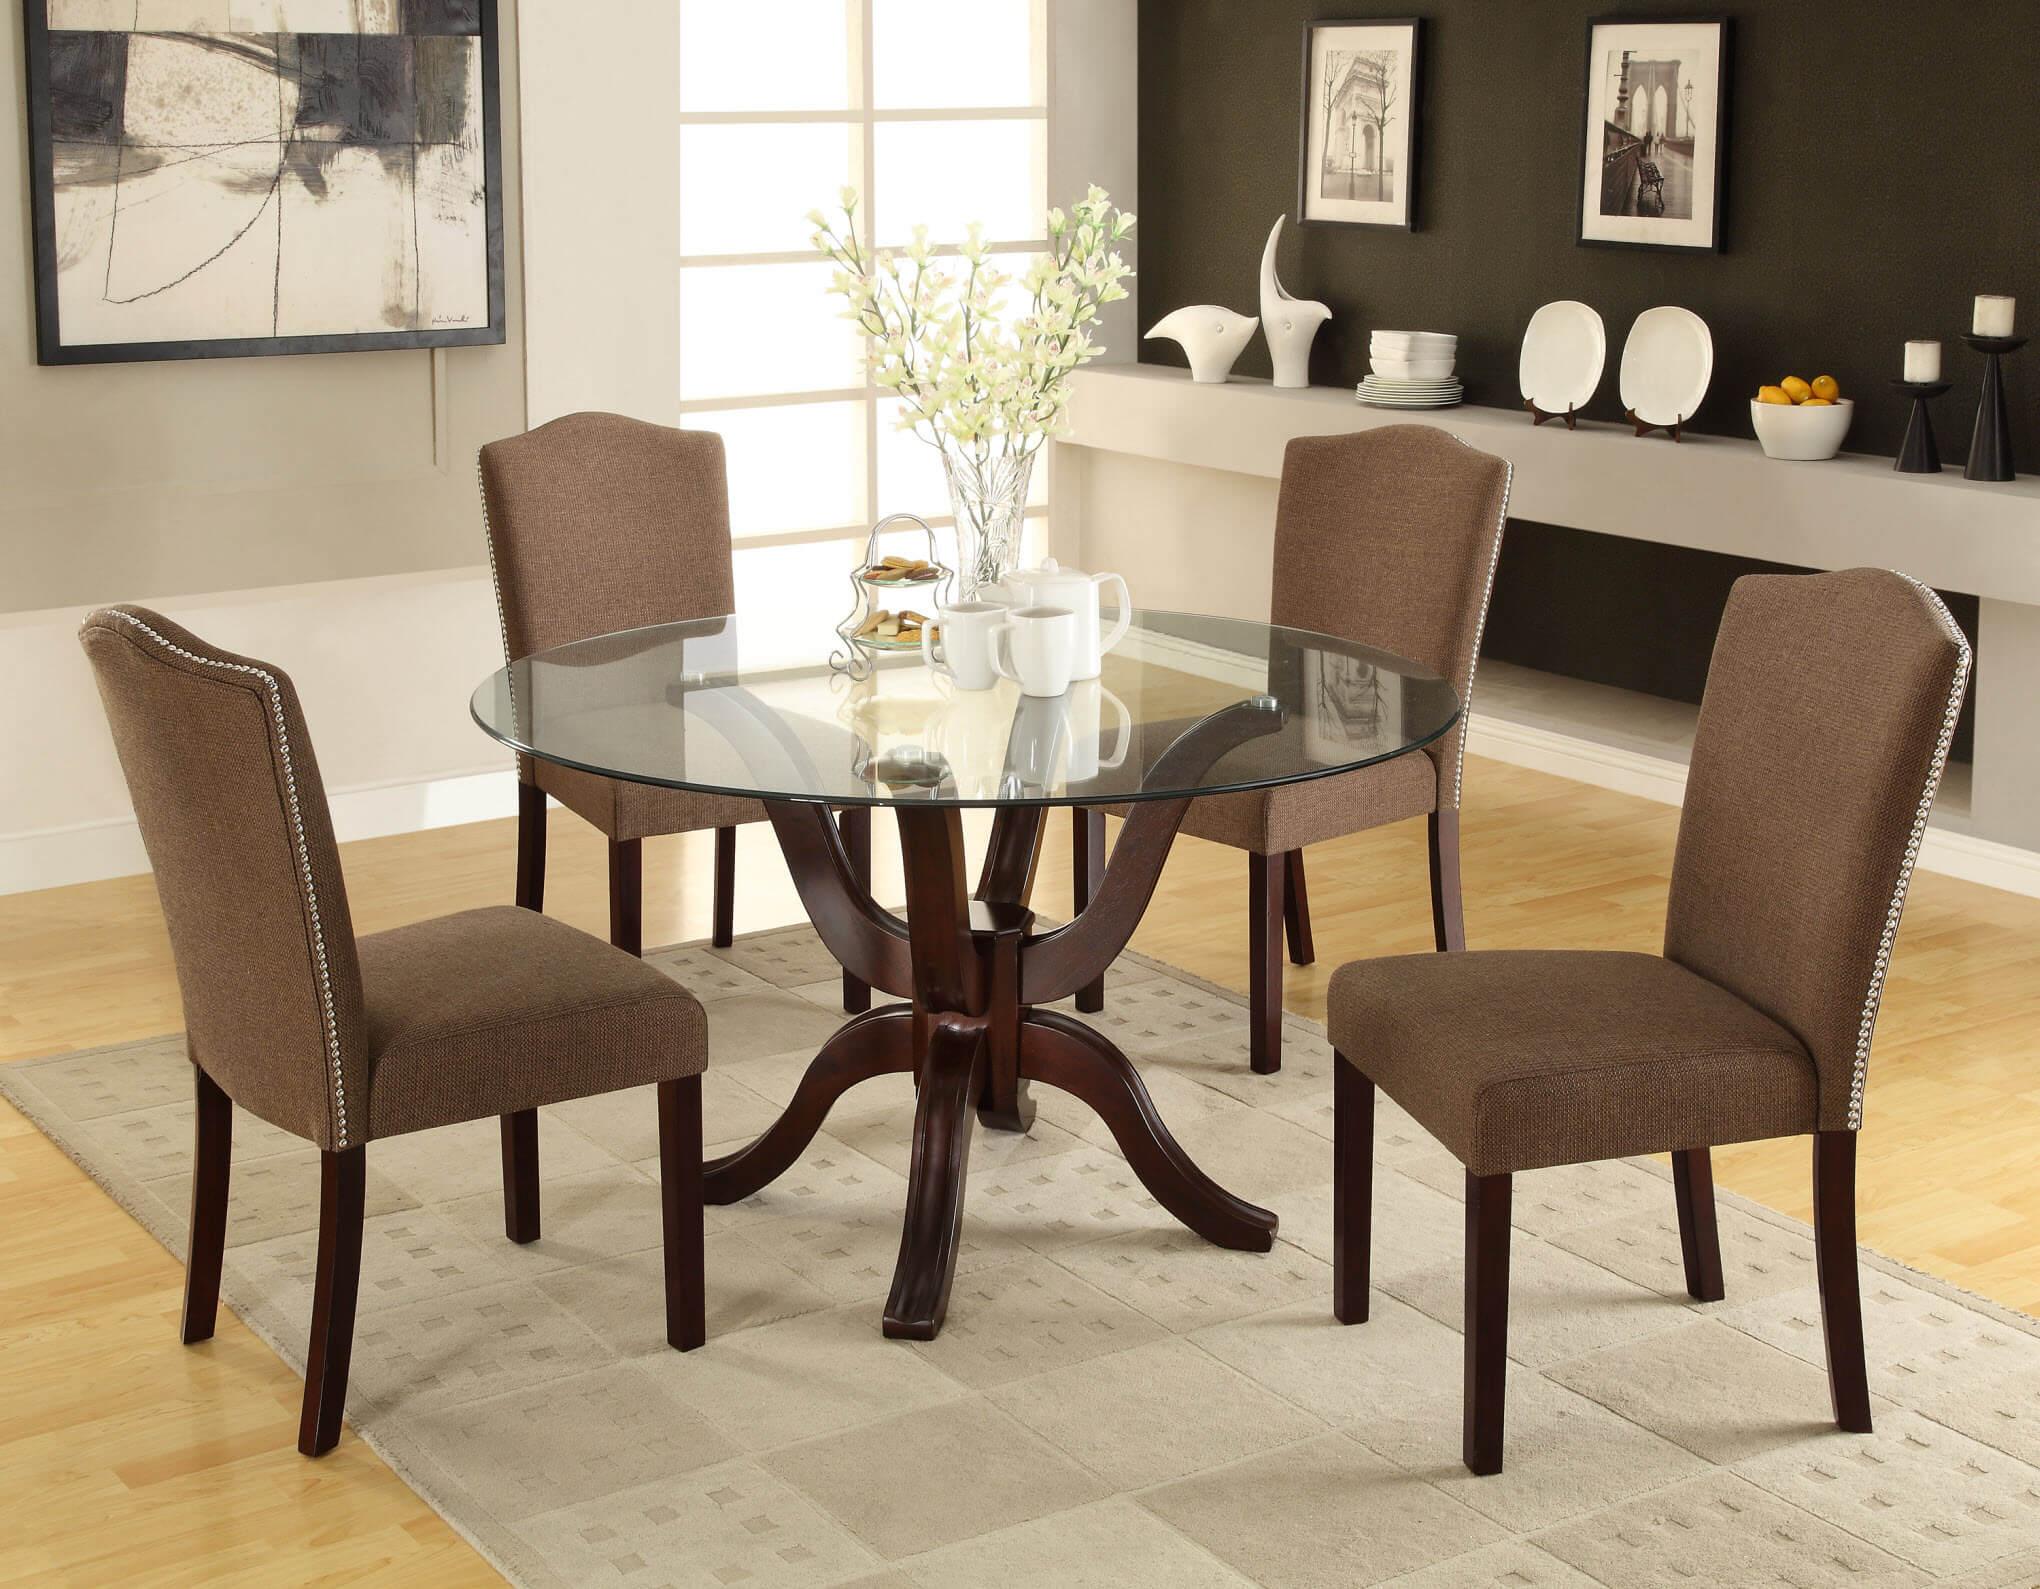 Of Dining Room Tables Dining Table Extending Kitchen Extendable Dining Table Extendable